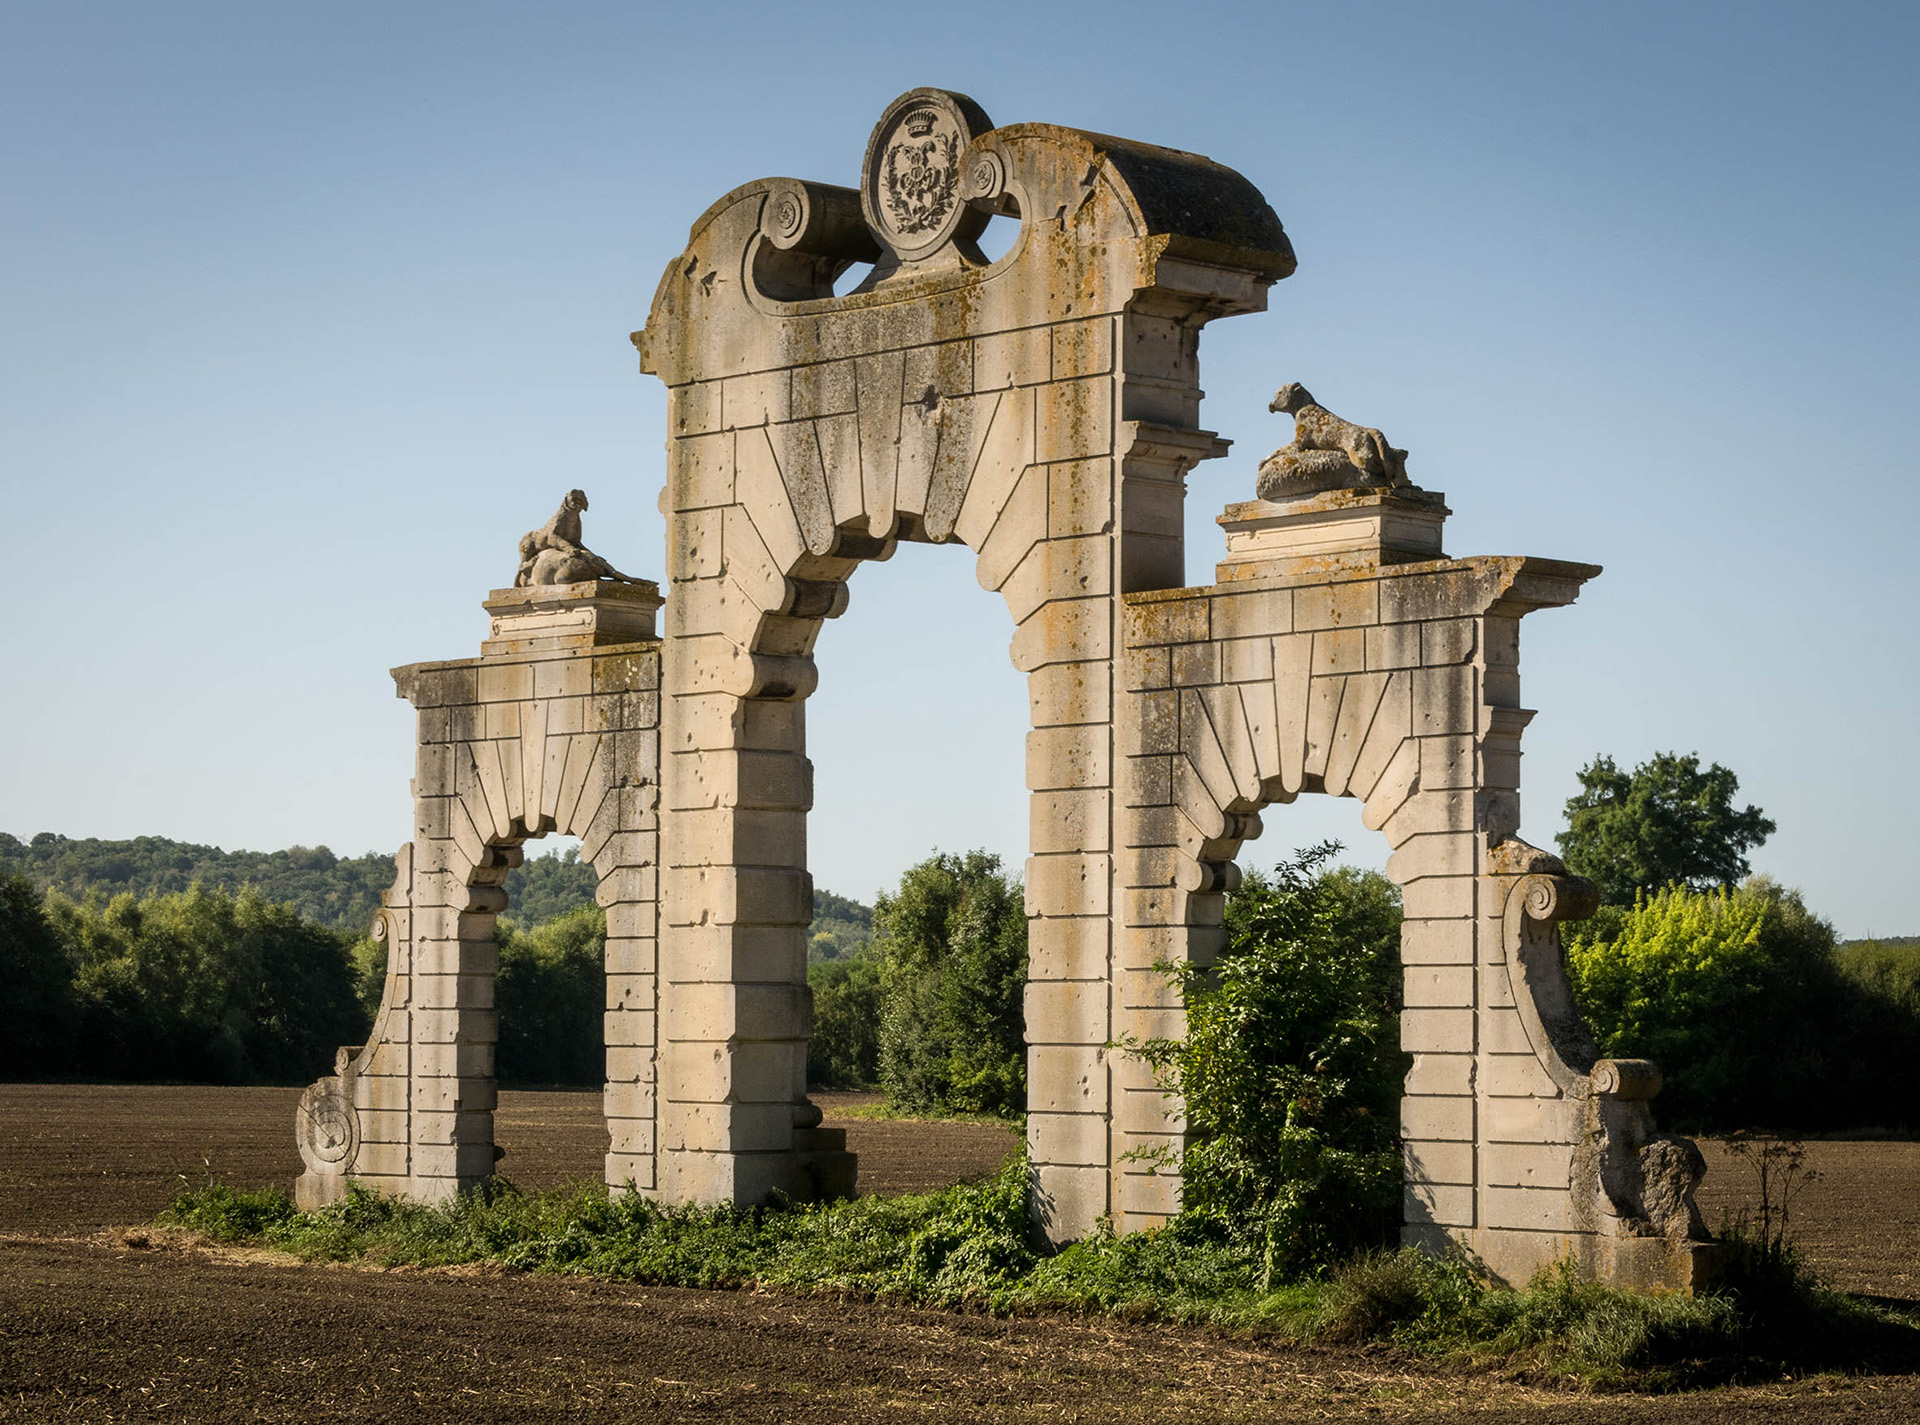 The sole remaining section, a triumphal arch, of the once grand Château de Soupir which lay close to the front line at the Chemin des Dames